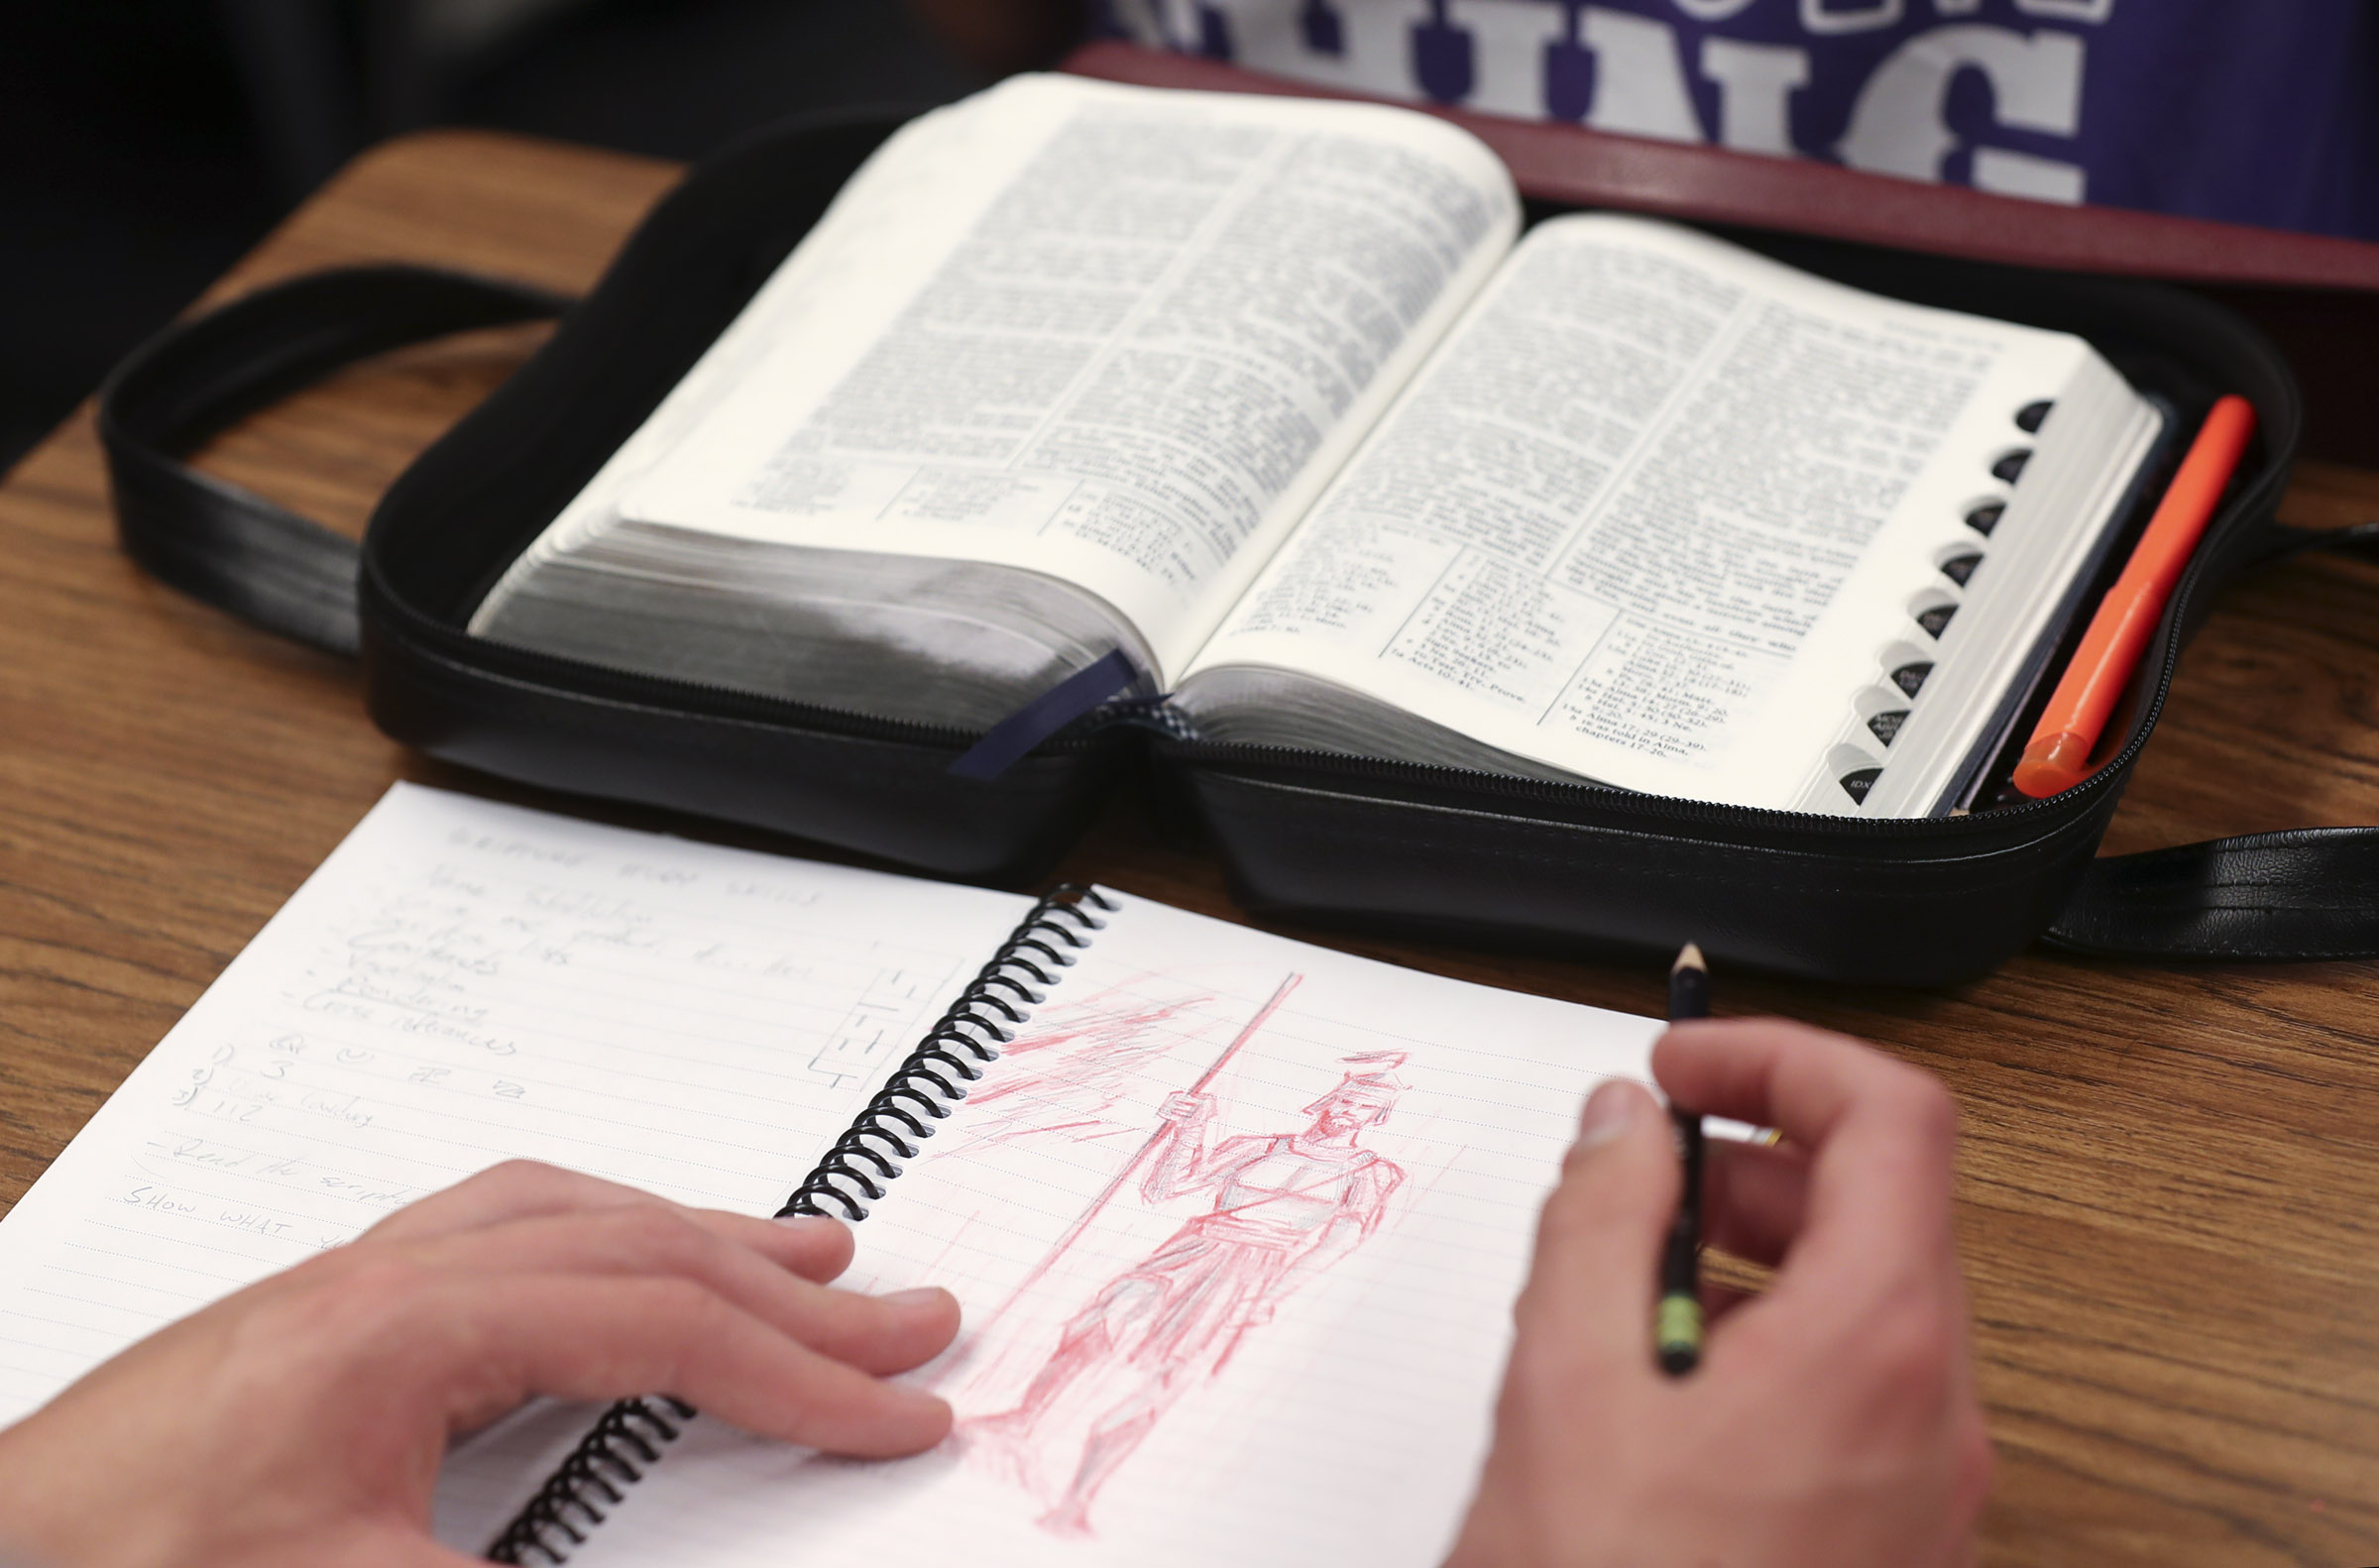 A student prepares to write in his journal during an LDS seminary class at West High School in Salt Lake City on Monday, Sept. 17, 2018.